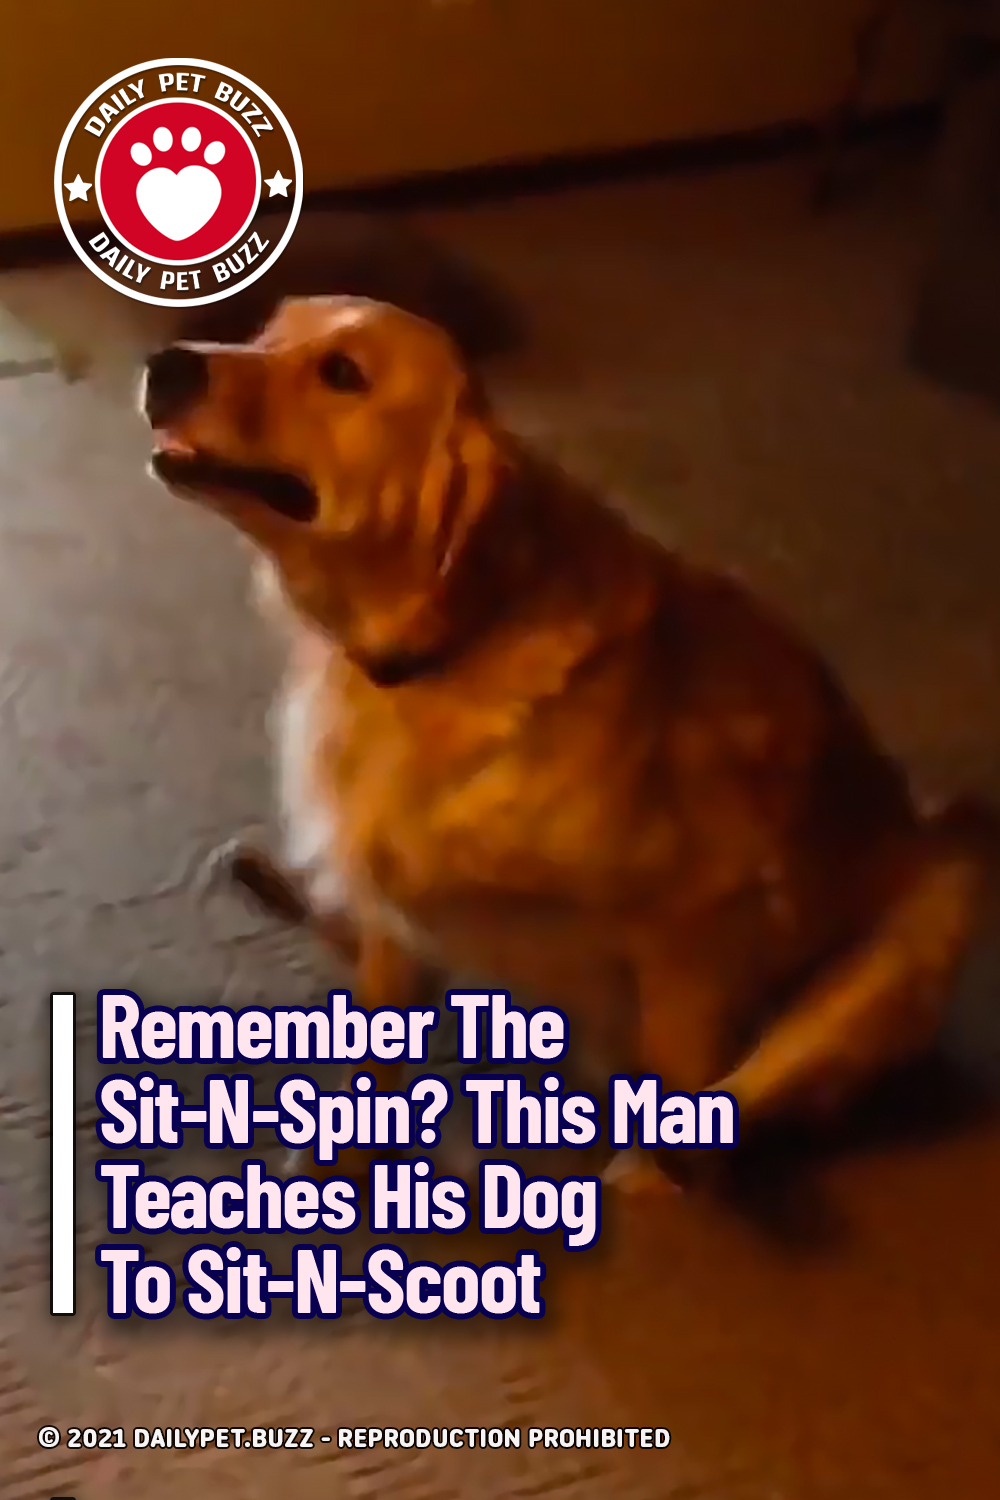 Remember The Sit-N-Spin? This Man Teaches His Dog To Sit-N-Scoot